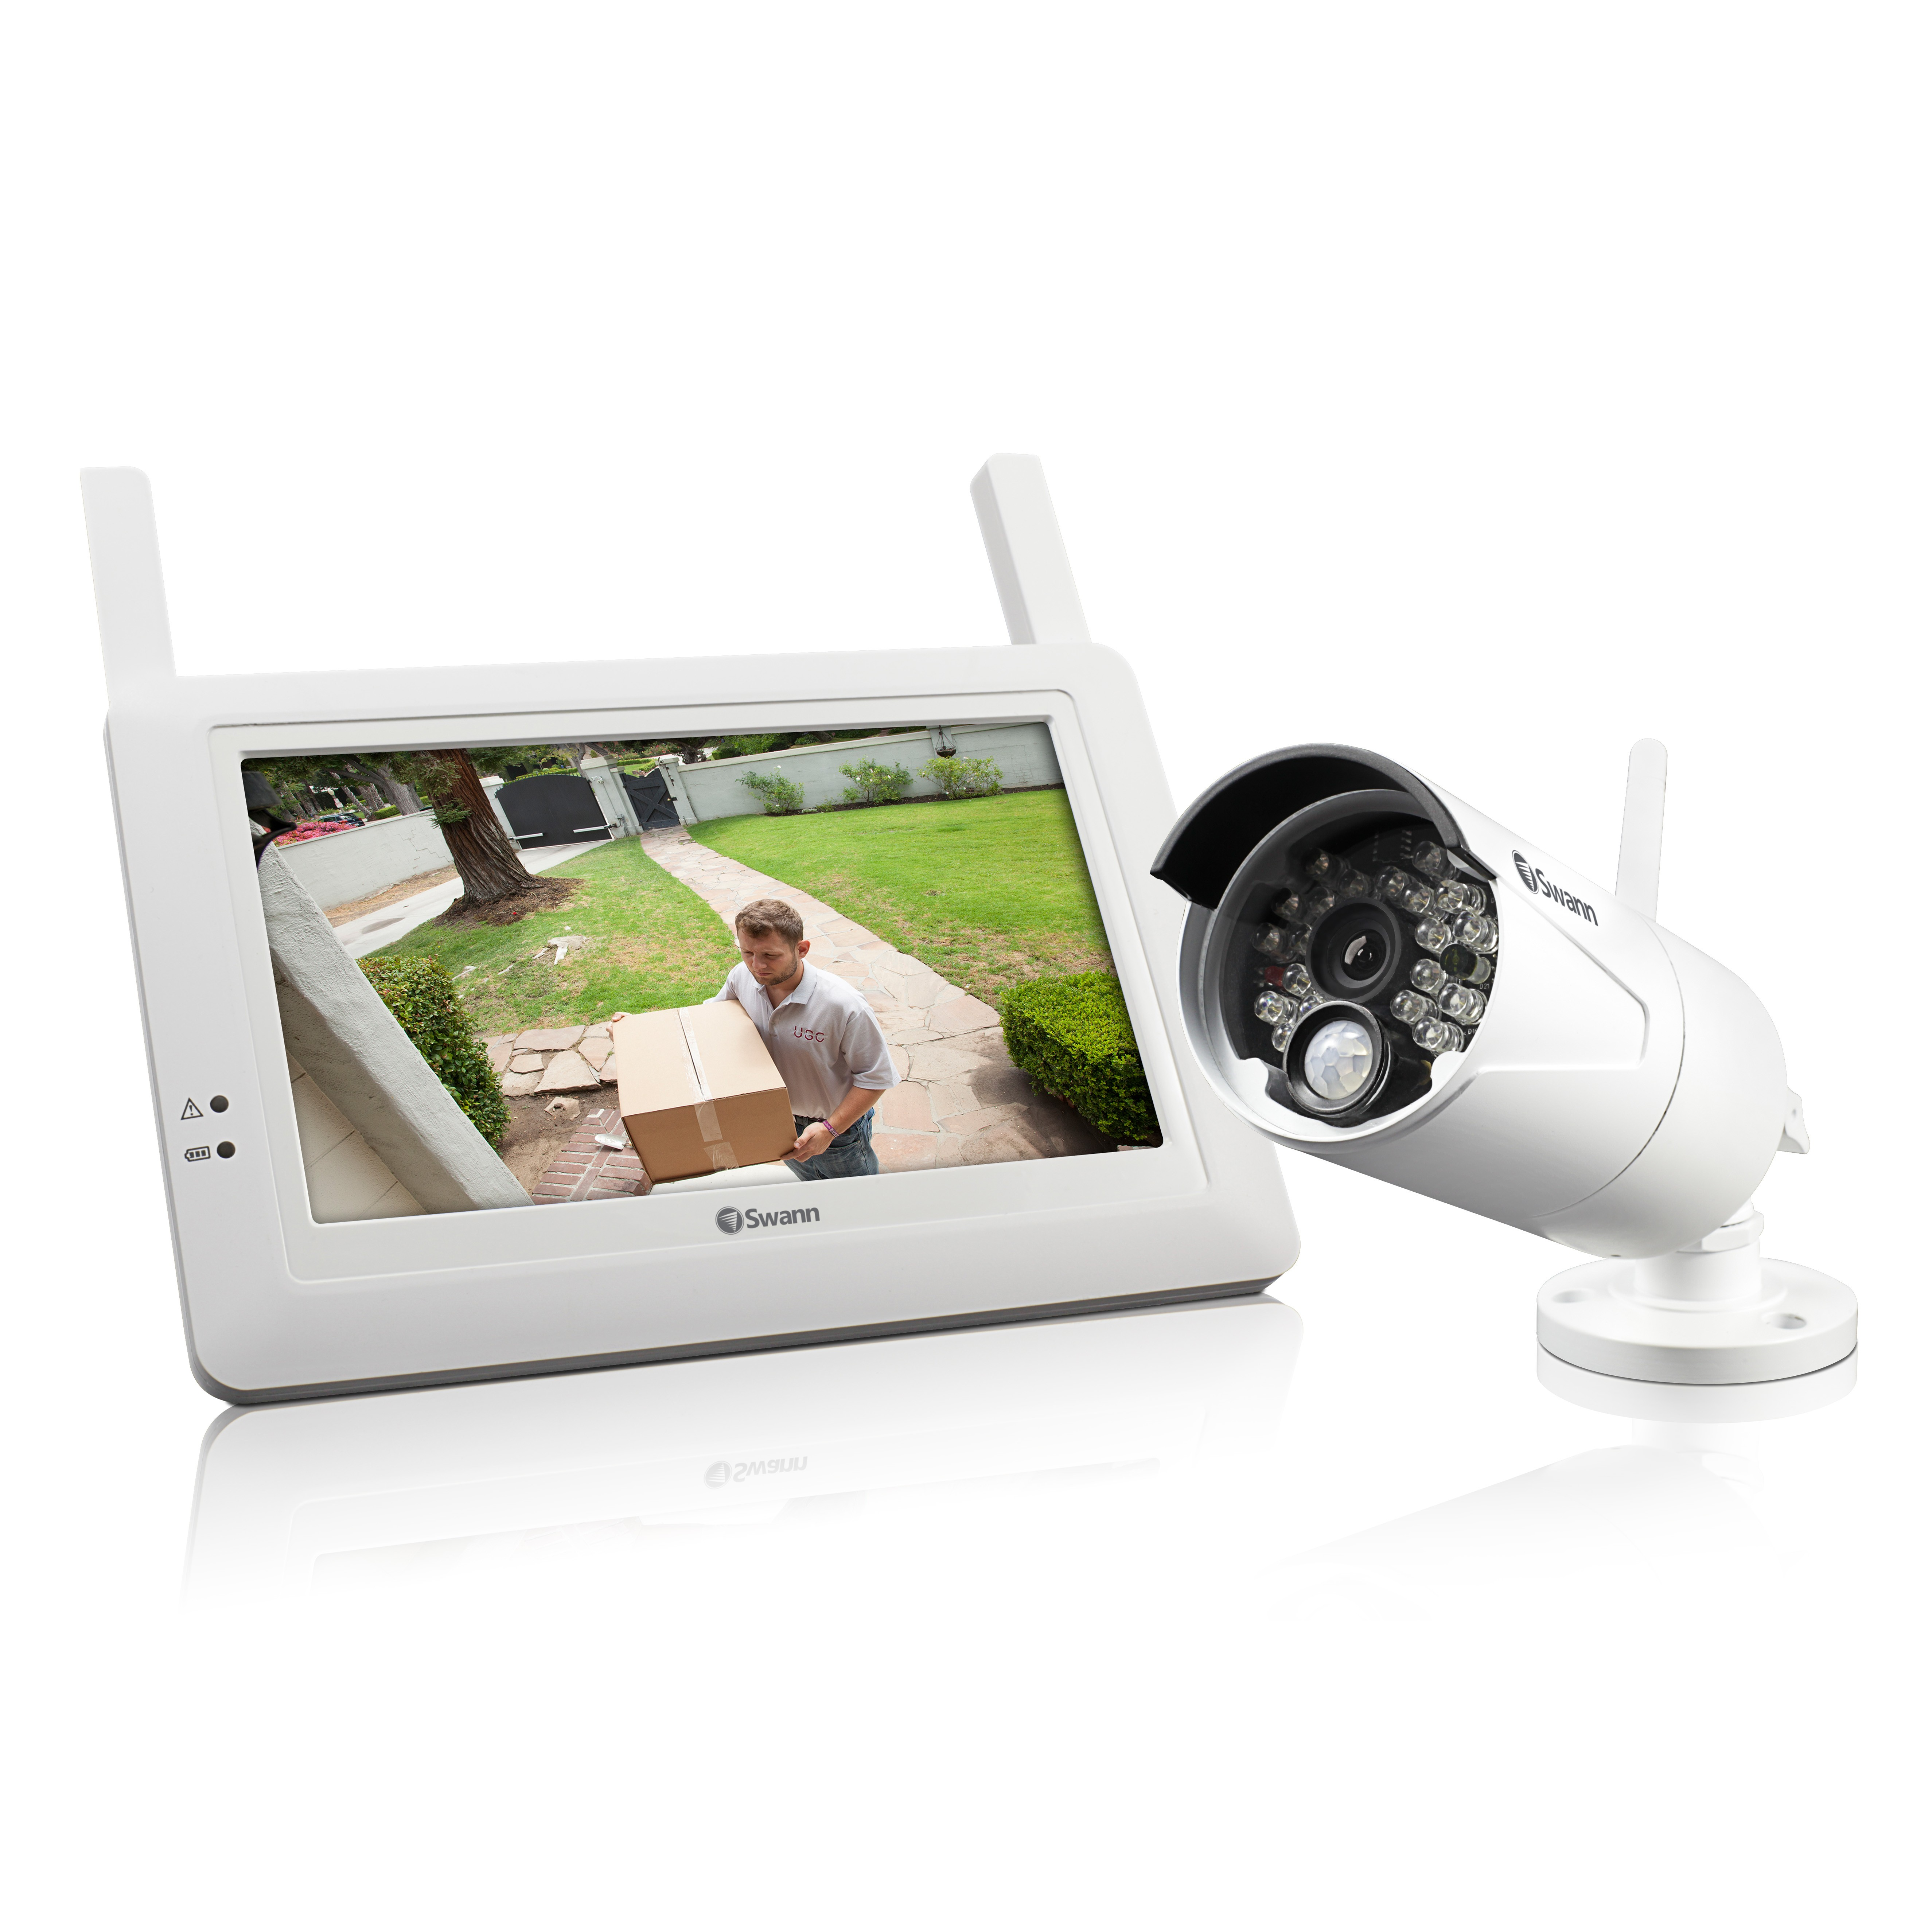 ADW-410 Wireless security system monitor and camera Australia